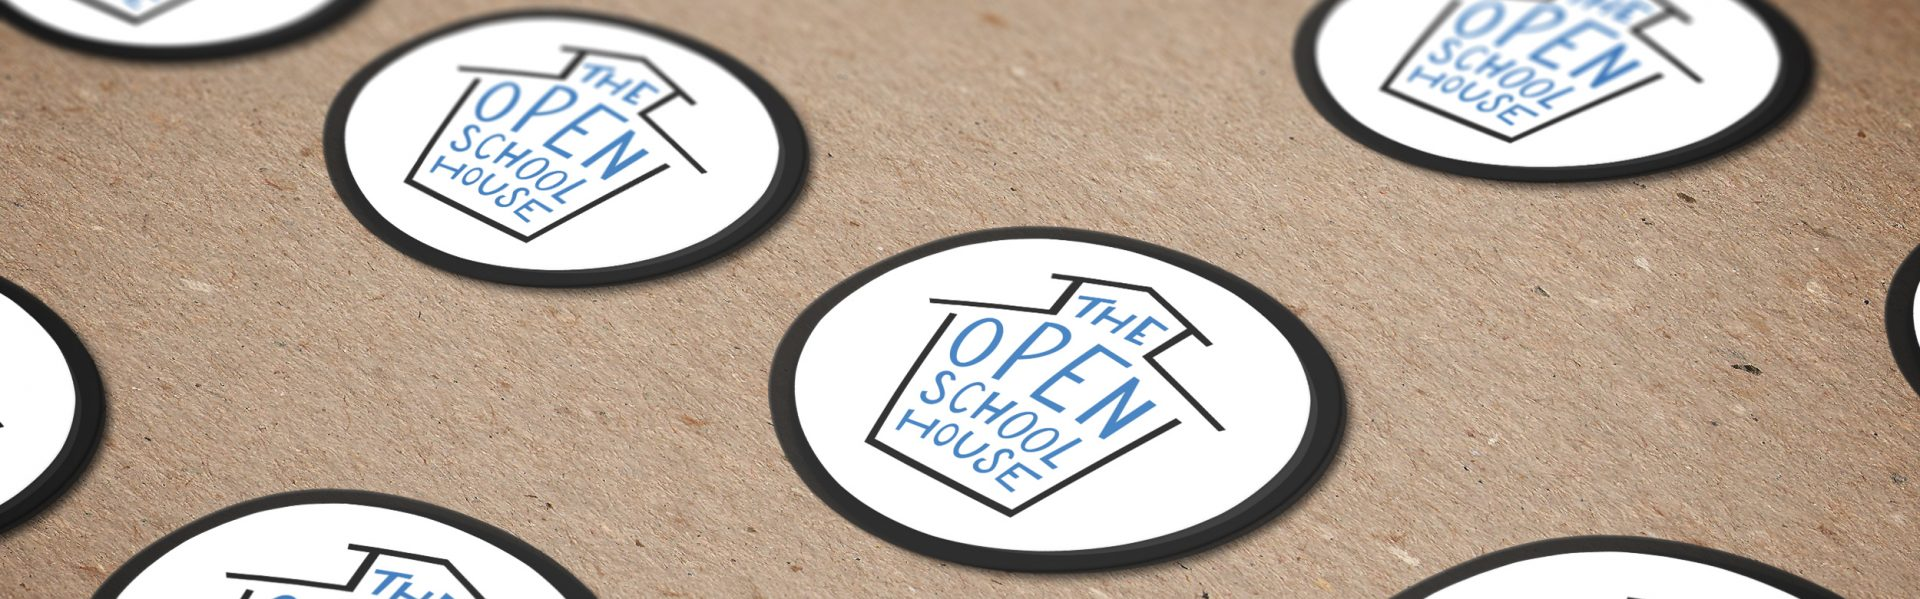 The Open Schoolhouse